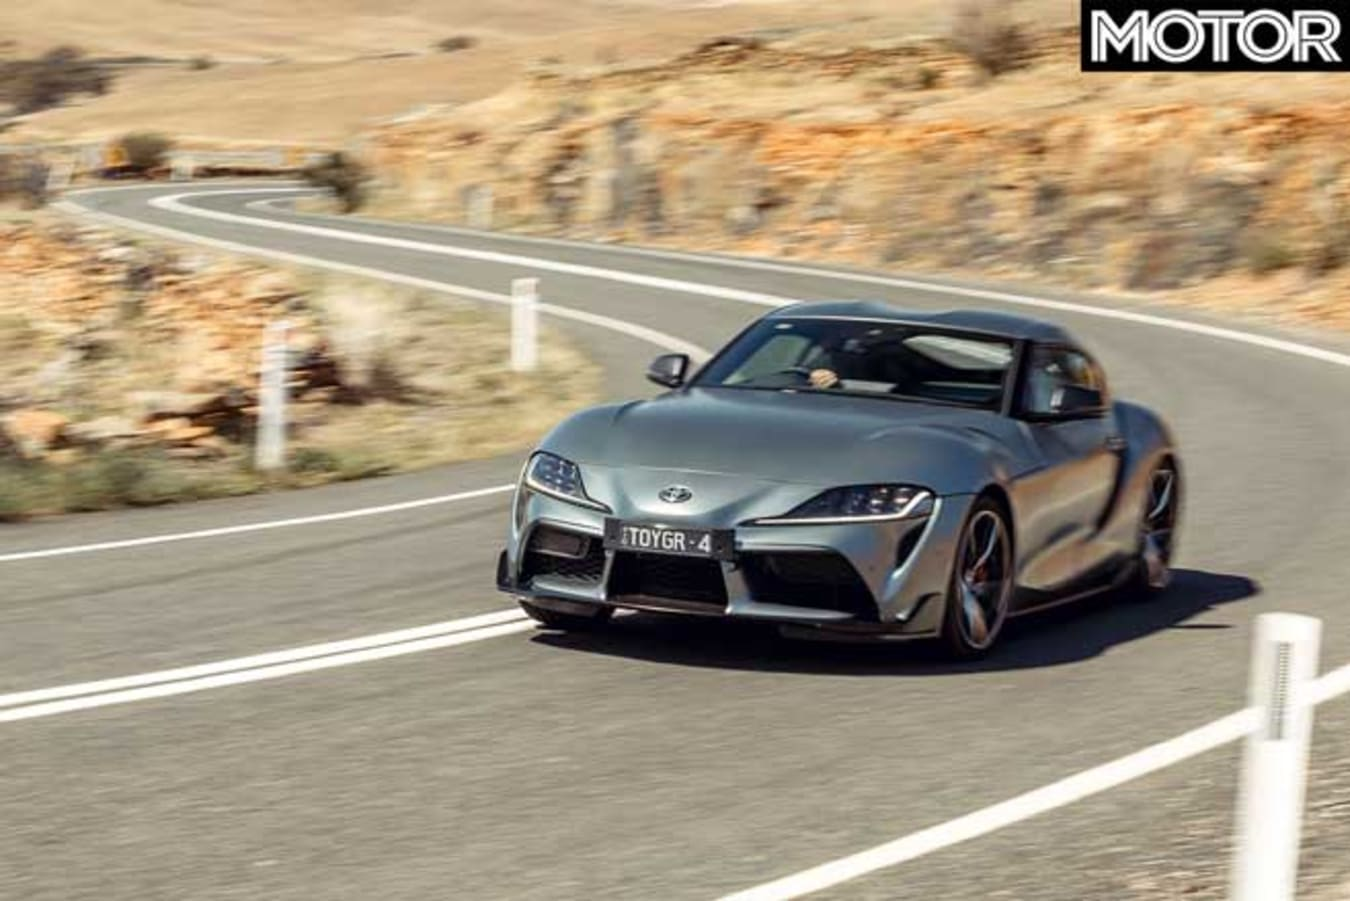 Performance Car Of The Year 2020 Road Course Toyota GR Supra Review Jpg